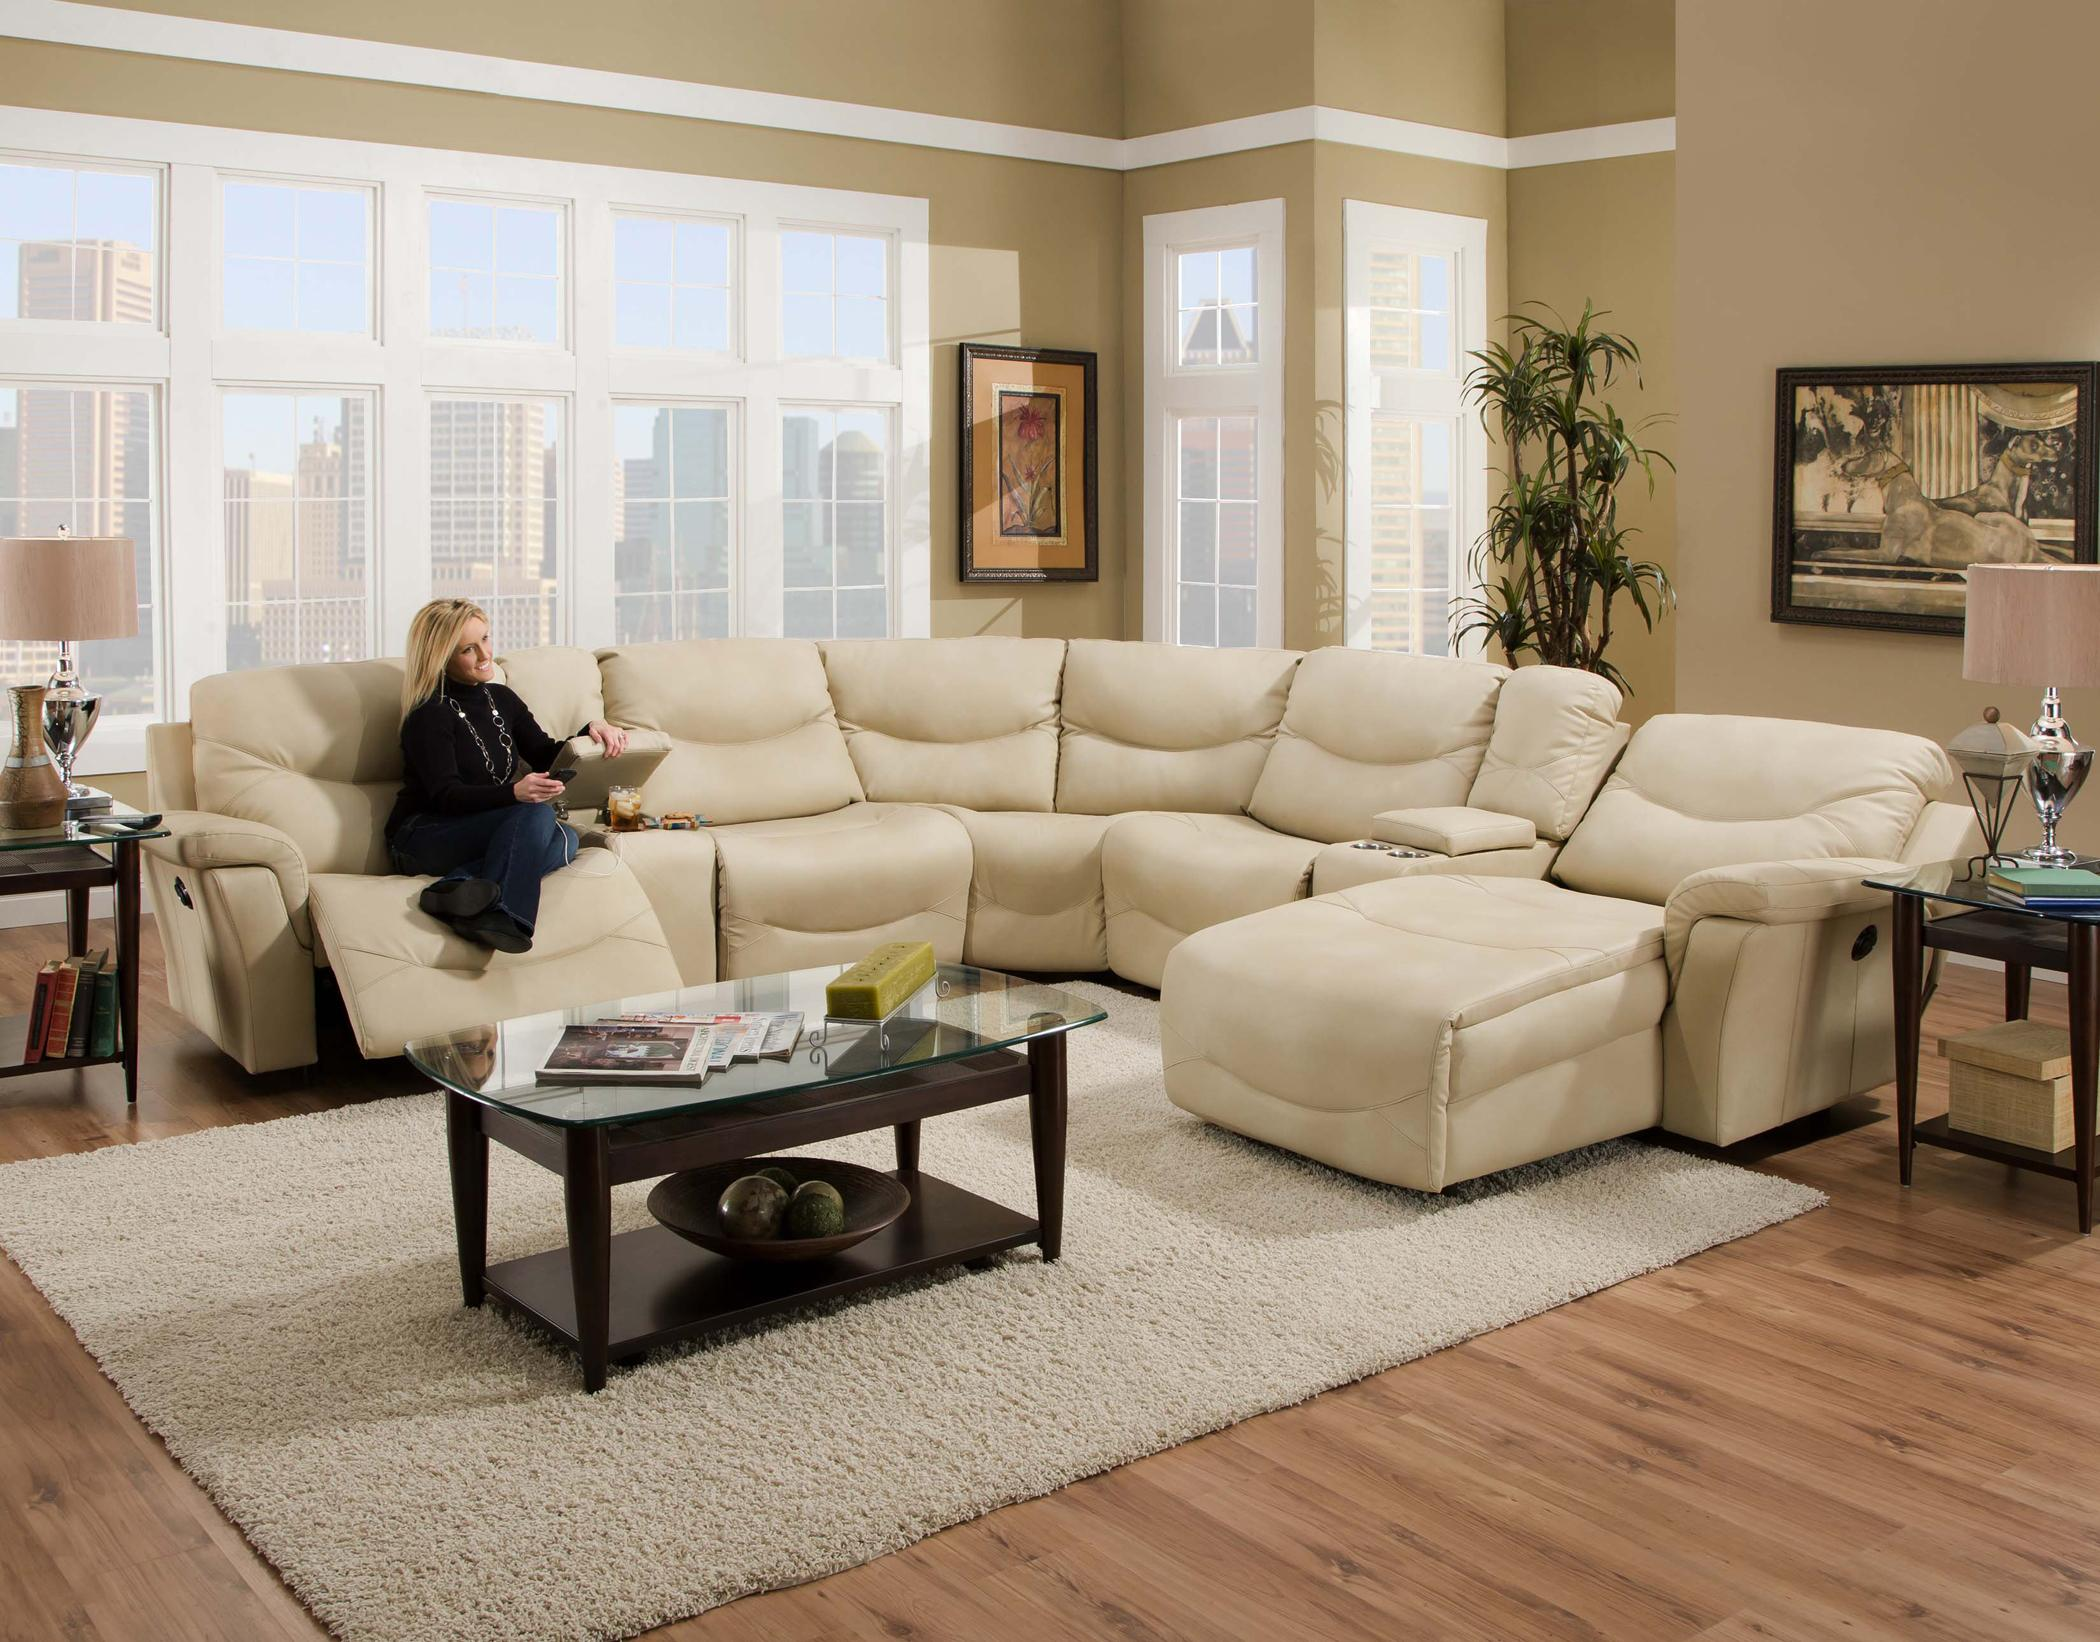 Sectional Sofa With Consoles Milano By Franklin Wilcox Furniture Reclining  Sectional Sofa Corpus Christi, Kingsville